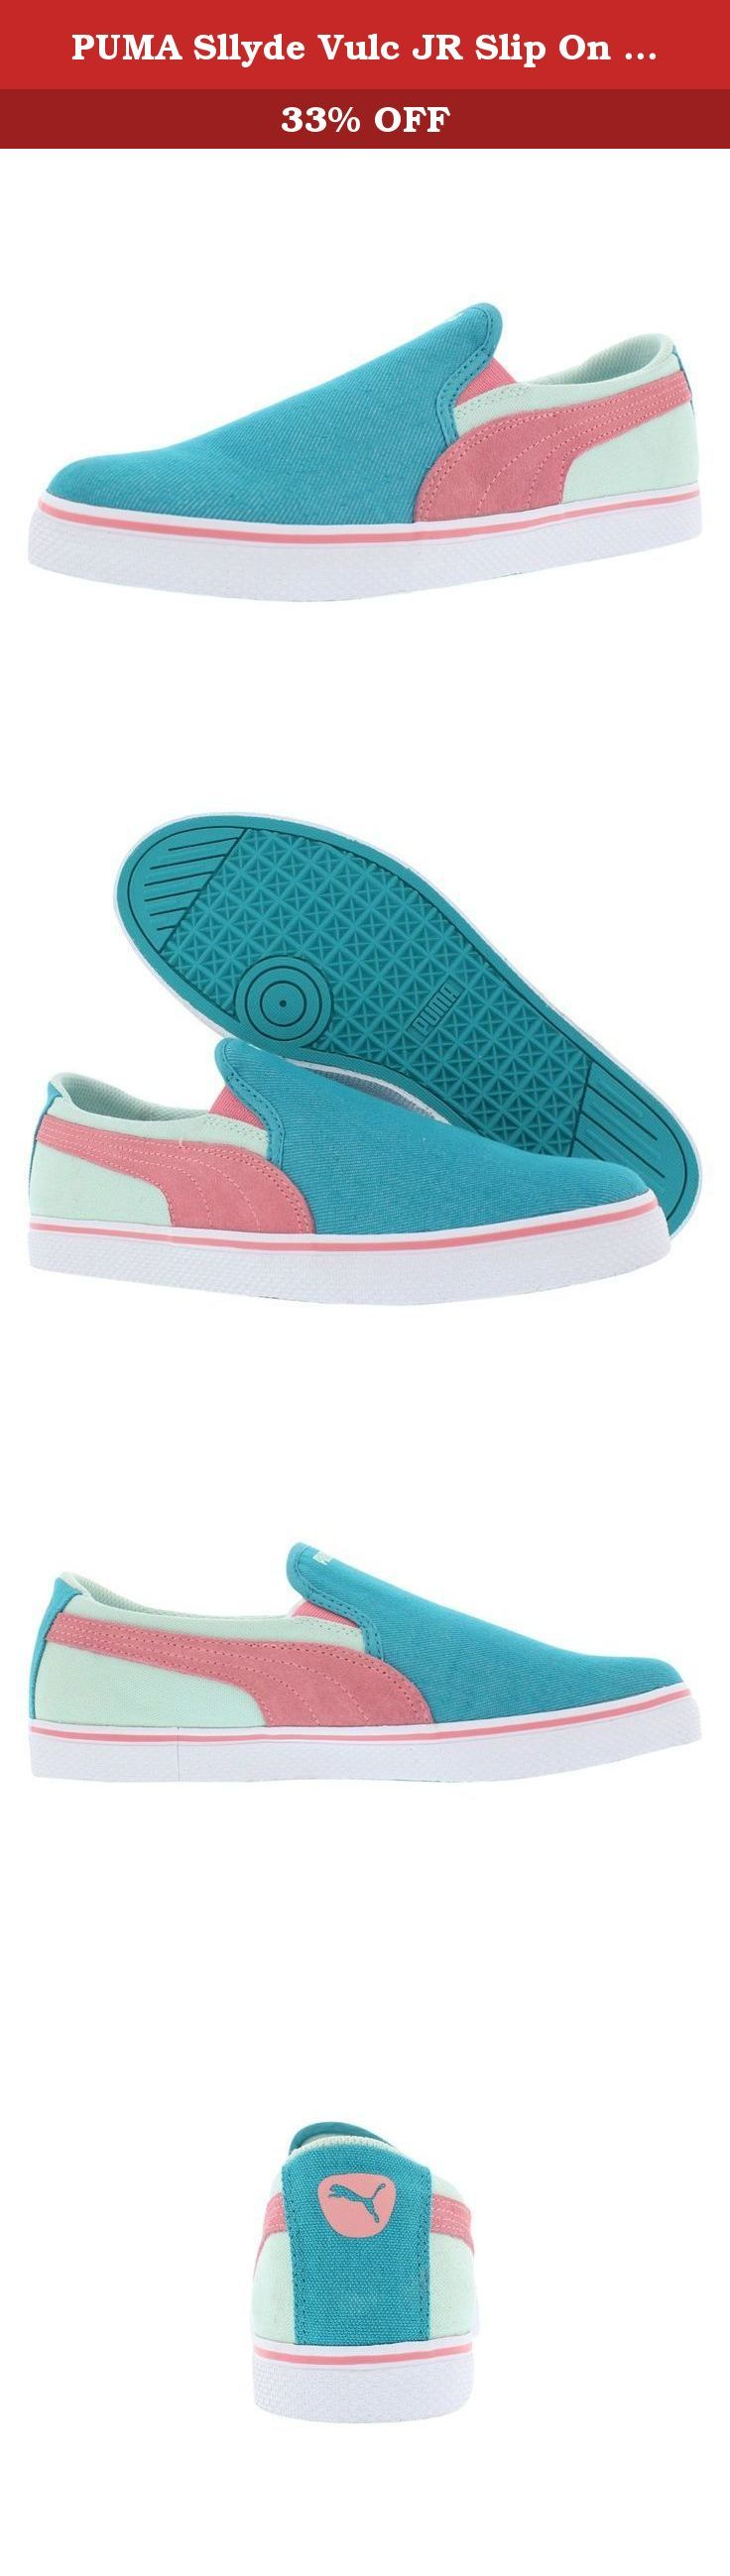 PUMA Sllyde Vulc JR Slip On (Little Kid/Big Kid) , Capri Breeze/Salmon Rose/Bay, 7 M US Big Kid. Keep your little guy set to jet with the Puma Sllyde Vulc Slip-On Shoes!Its combination canvas and suede upper offers durability and a rich look,while the mesh lining keeps his feet comfy.Sitting atop a vulcanized rubber sole,this sneaker is perfect for on-the-go dudes!The Puma Sllyde Vulc Slip-On shoes have cushioned insole and mesh lining.Made for easy wear,this shoe can be the perfect one…